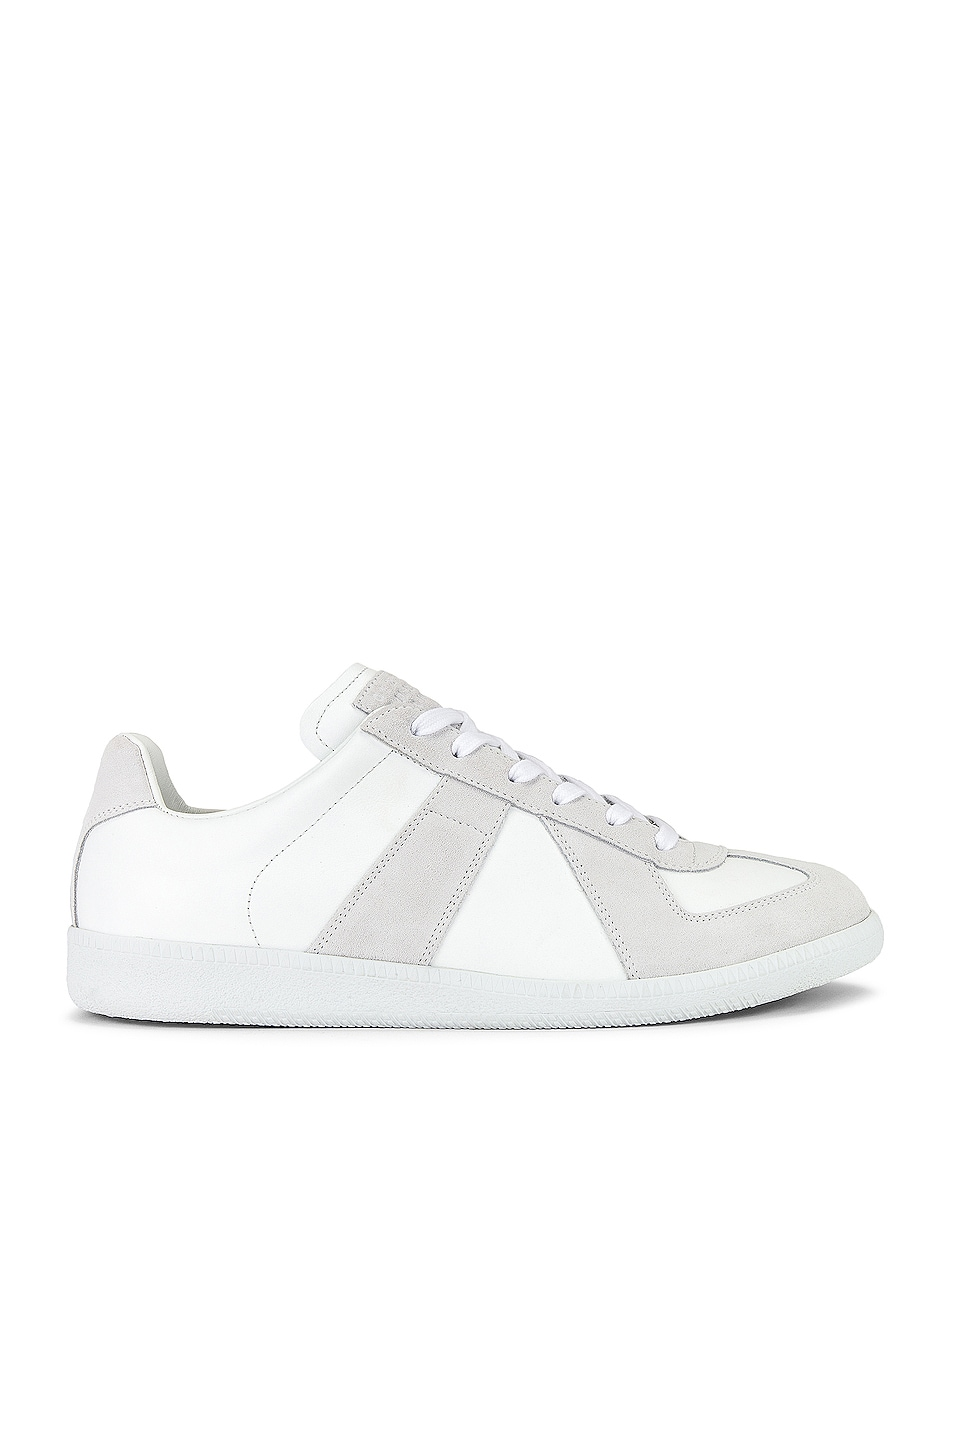 Image 1 of Maison Margiela Replica Low Top Sneakers in Off White